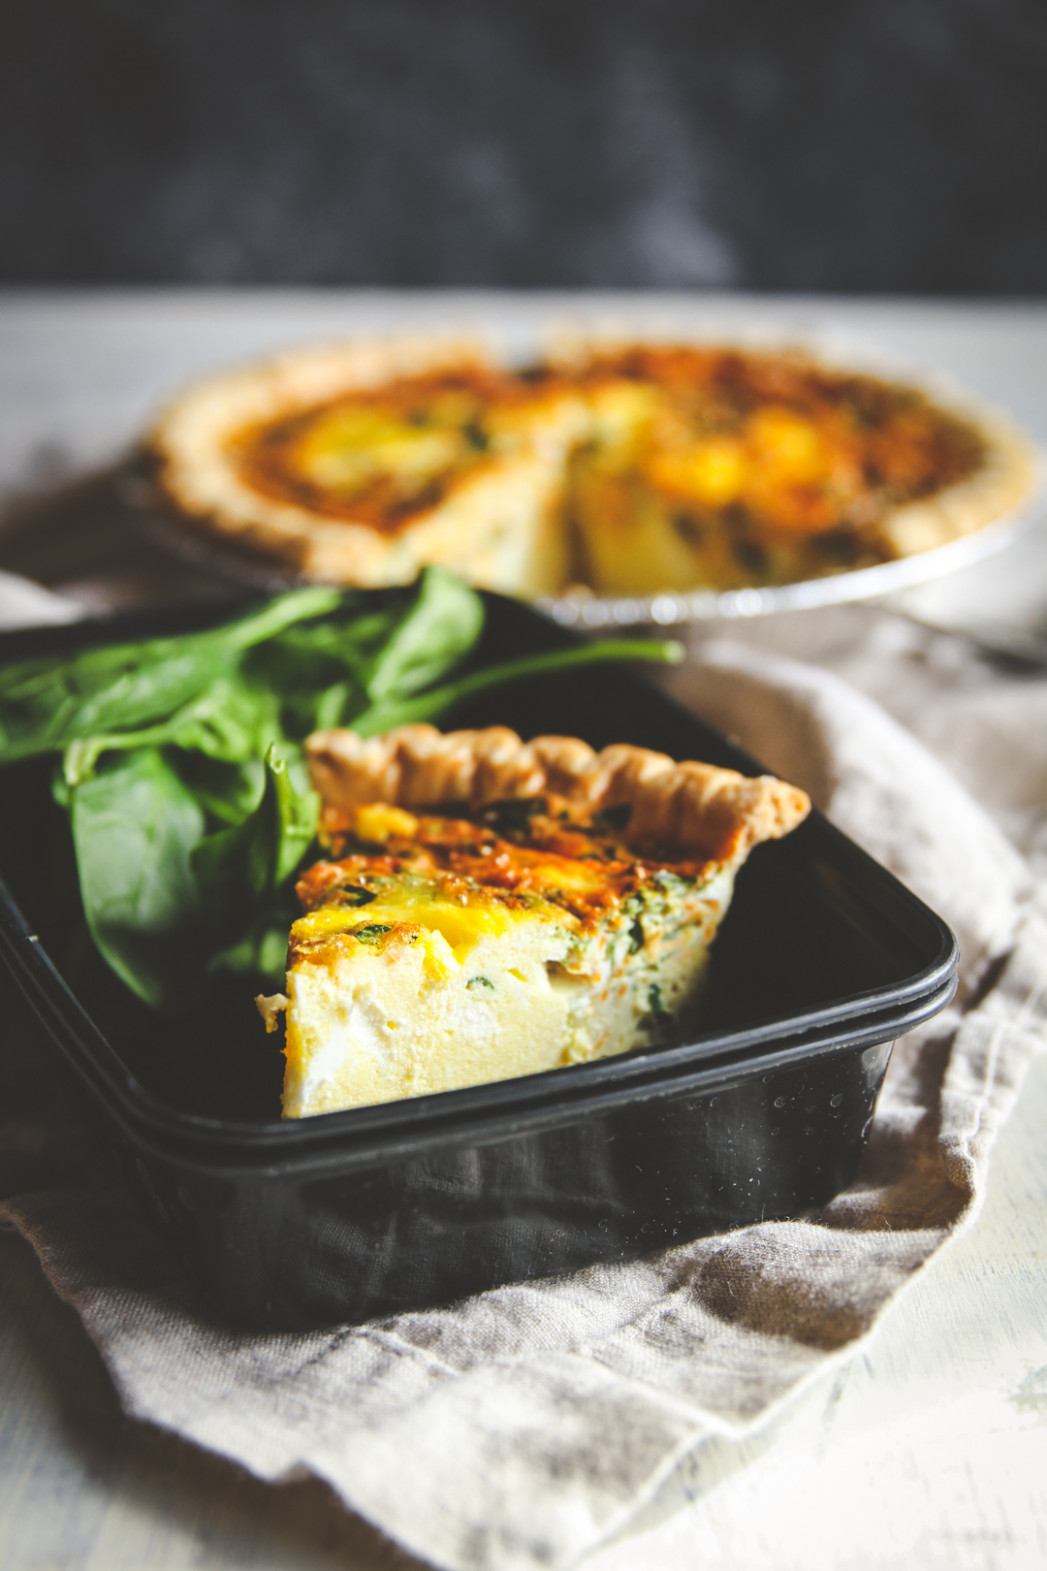 Make Ahead Freezer Meals Quiche Recipe - Sweetphi - Dinner Recipes You Can Prepare In Advance